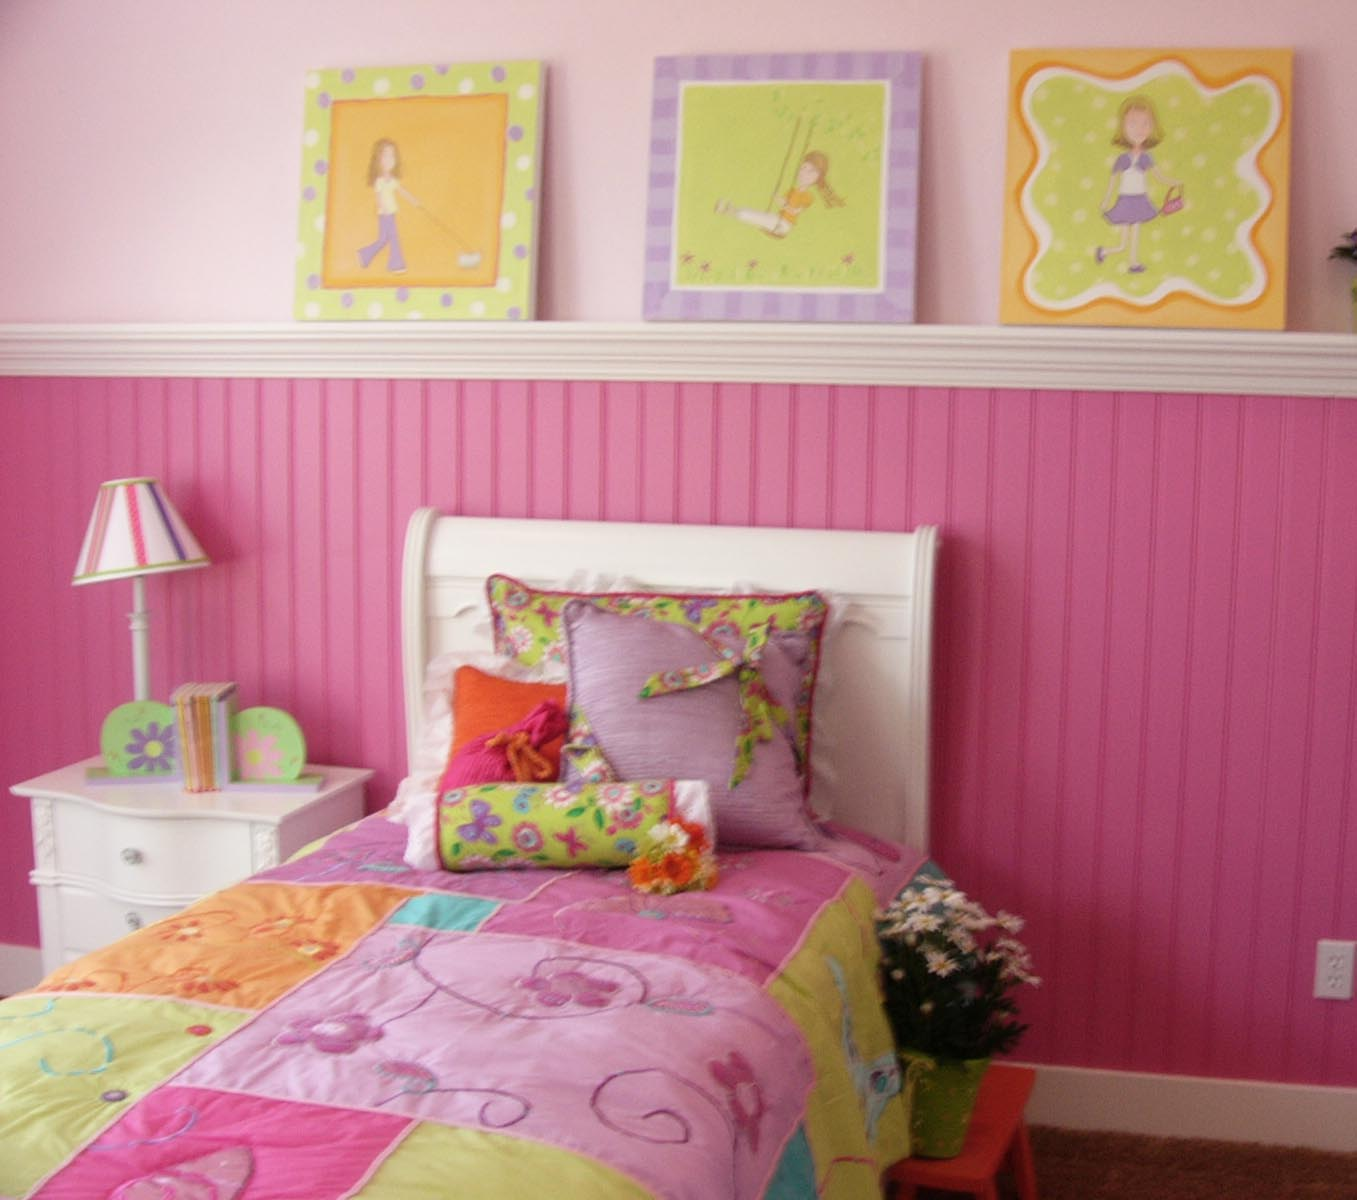 Pink Girl Bedrooms Traditional Little Girls Rooms Shared Girls Young girls  bedroom design  Modern Bedroom. Little Girl Bedroom Design   PierPointSprings com